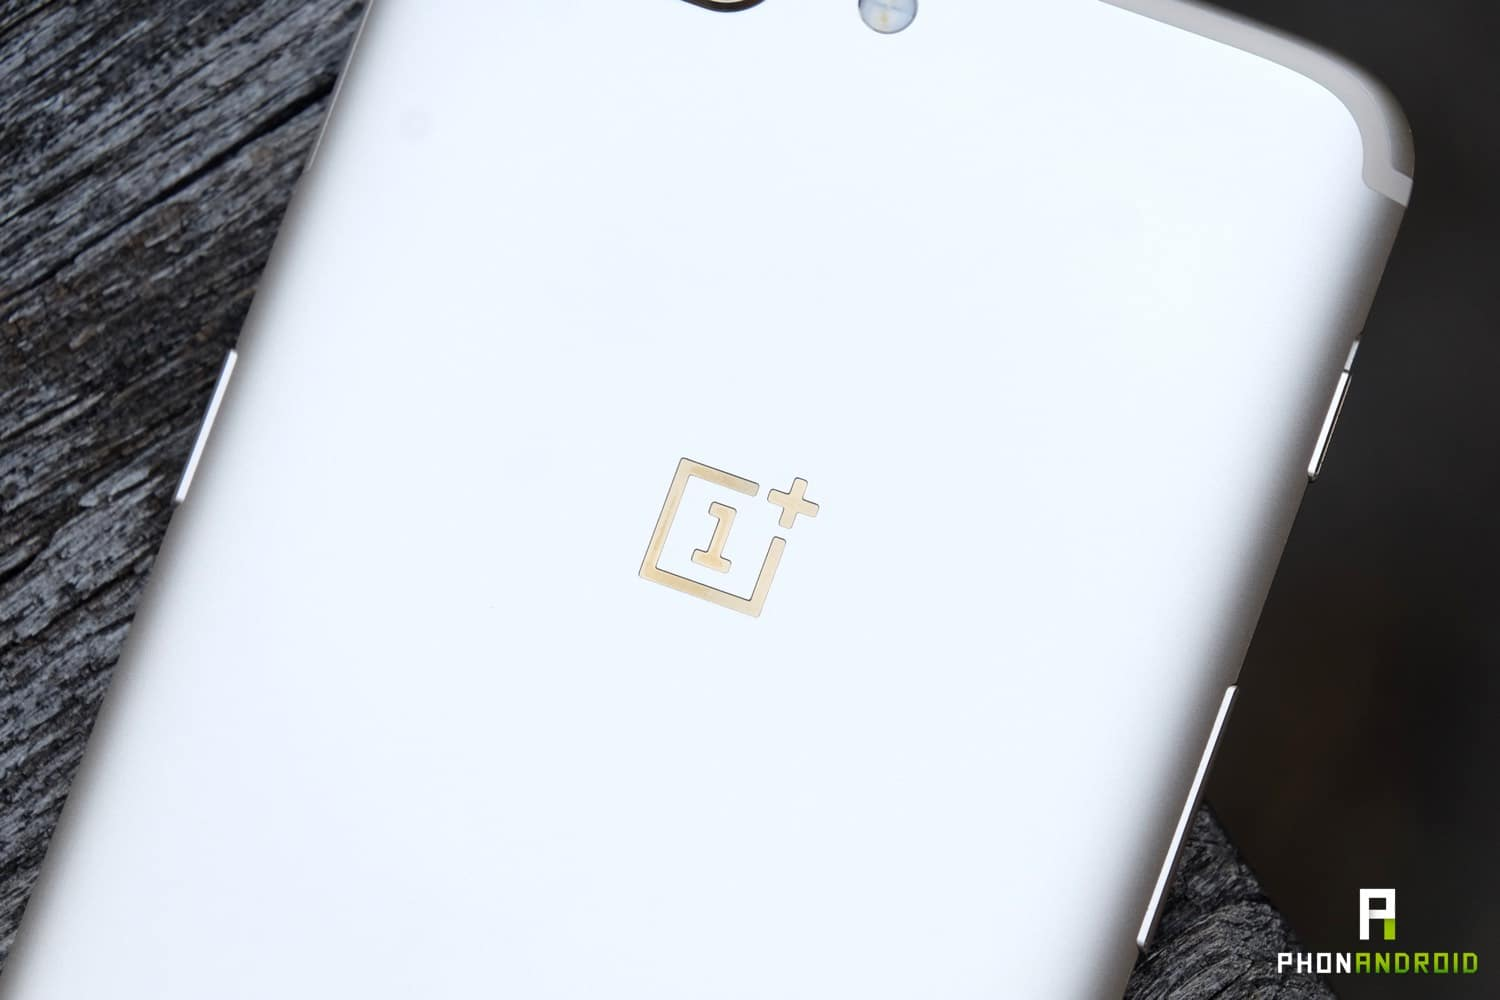 oneplus 5 soft gold or